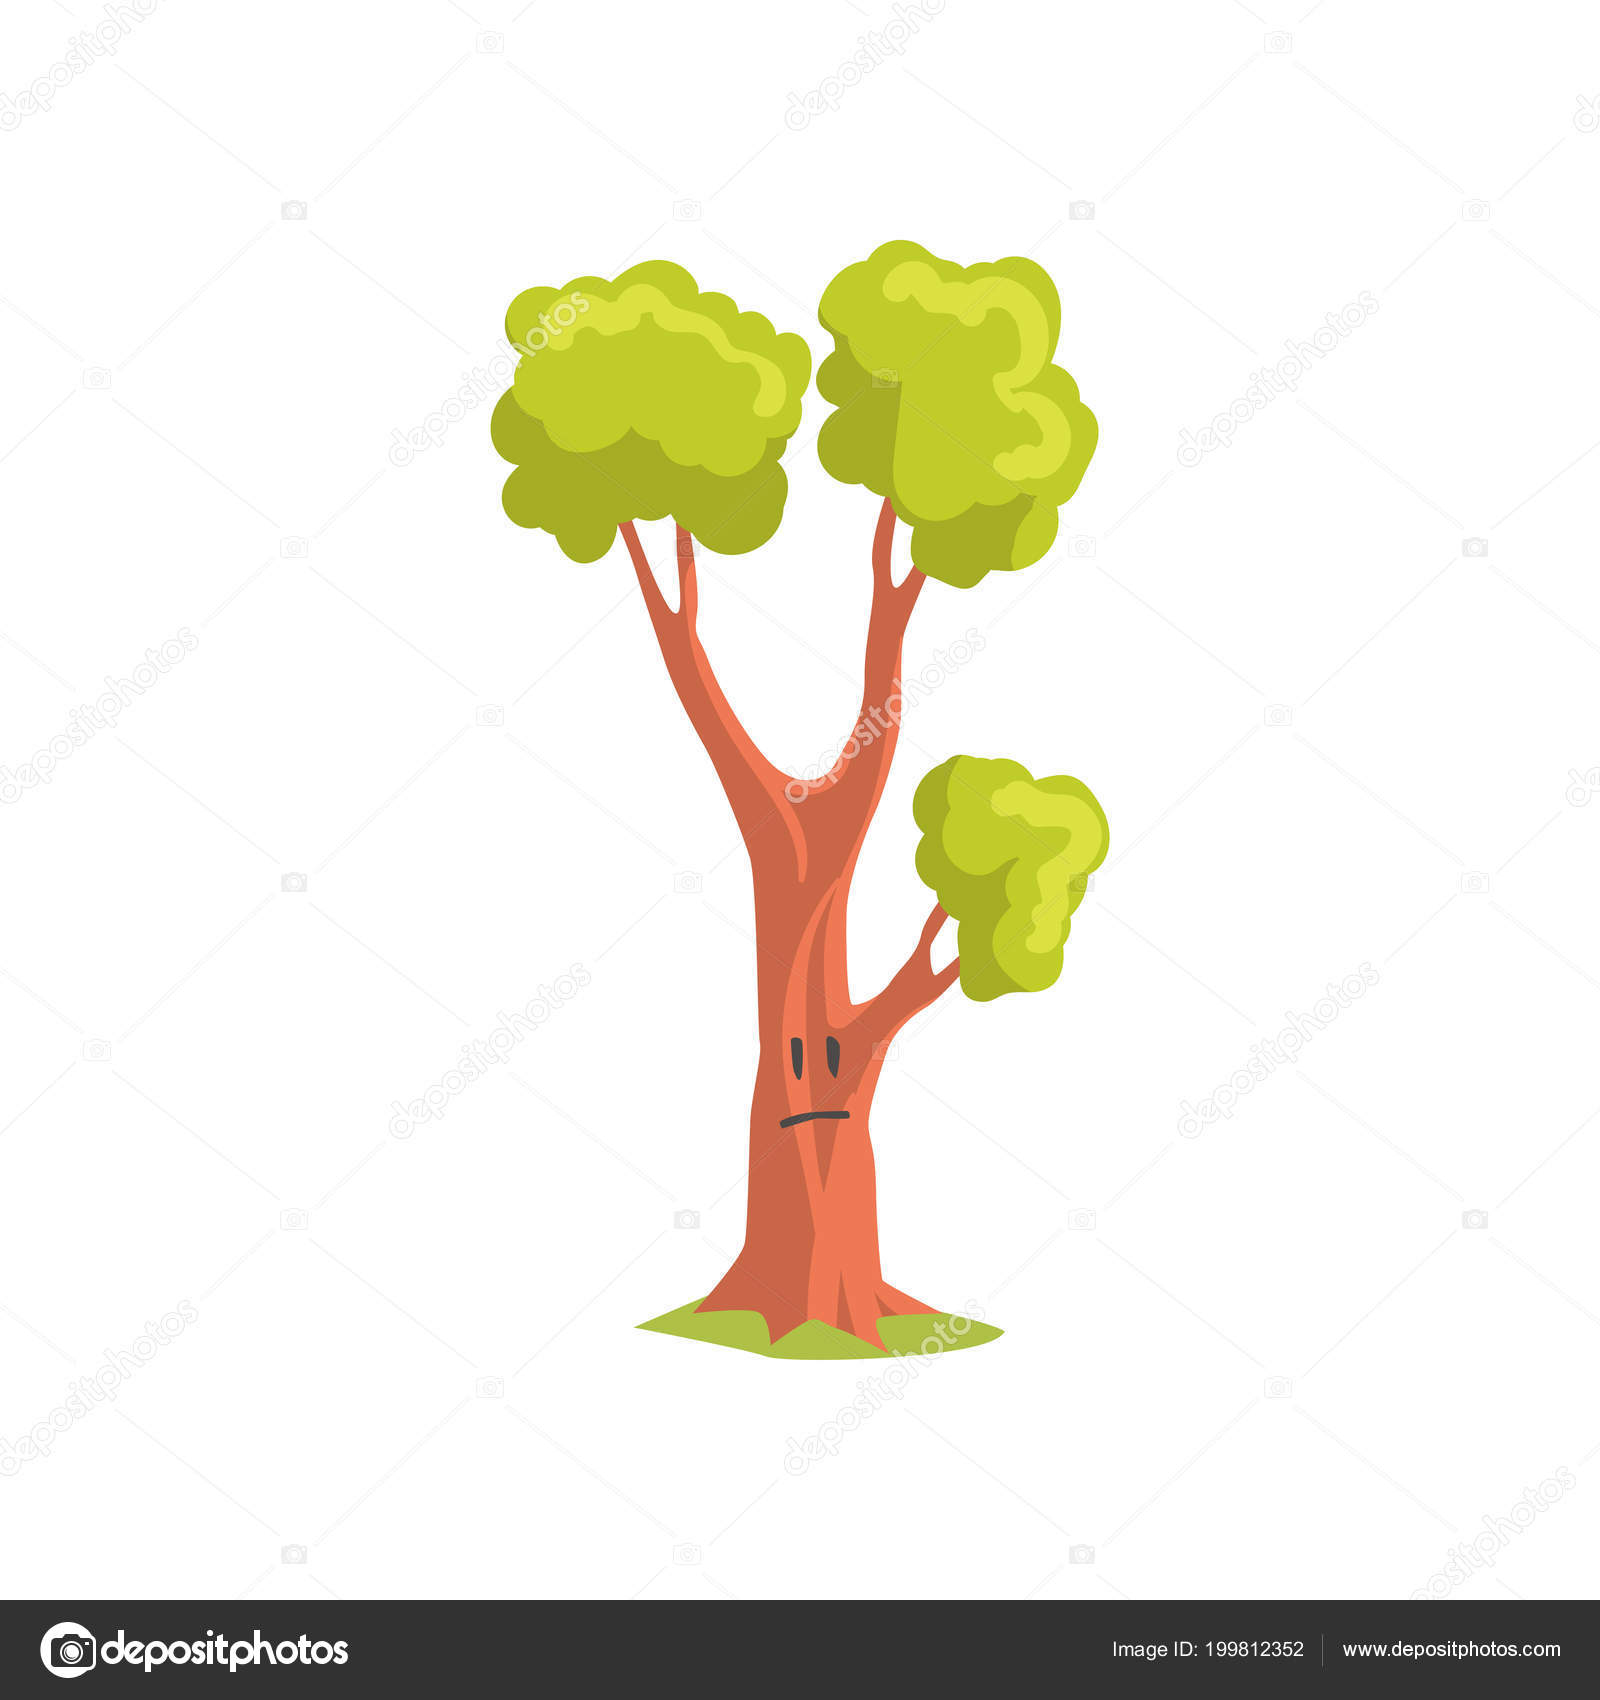 Cartoon Character Of Forest Tree With Sad Face Expression Park Plant With Bright Green Foliage Flat Vector Design Stock Vector C Topvectors 199812352 Appearance, size and color can be customized to fit your home, park, or shopping mall. https depositphotos com 199812352 stock illustration cartoon character of forest tree html